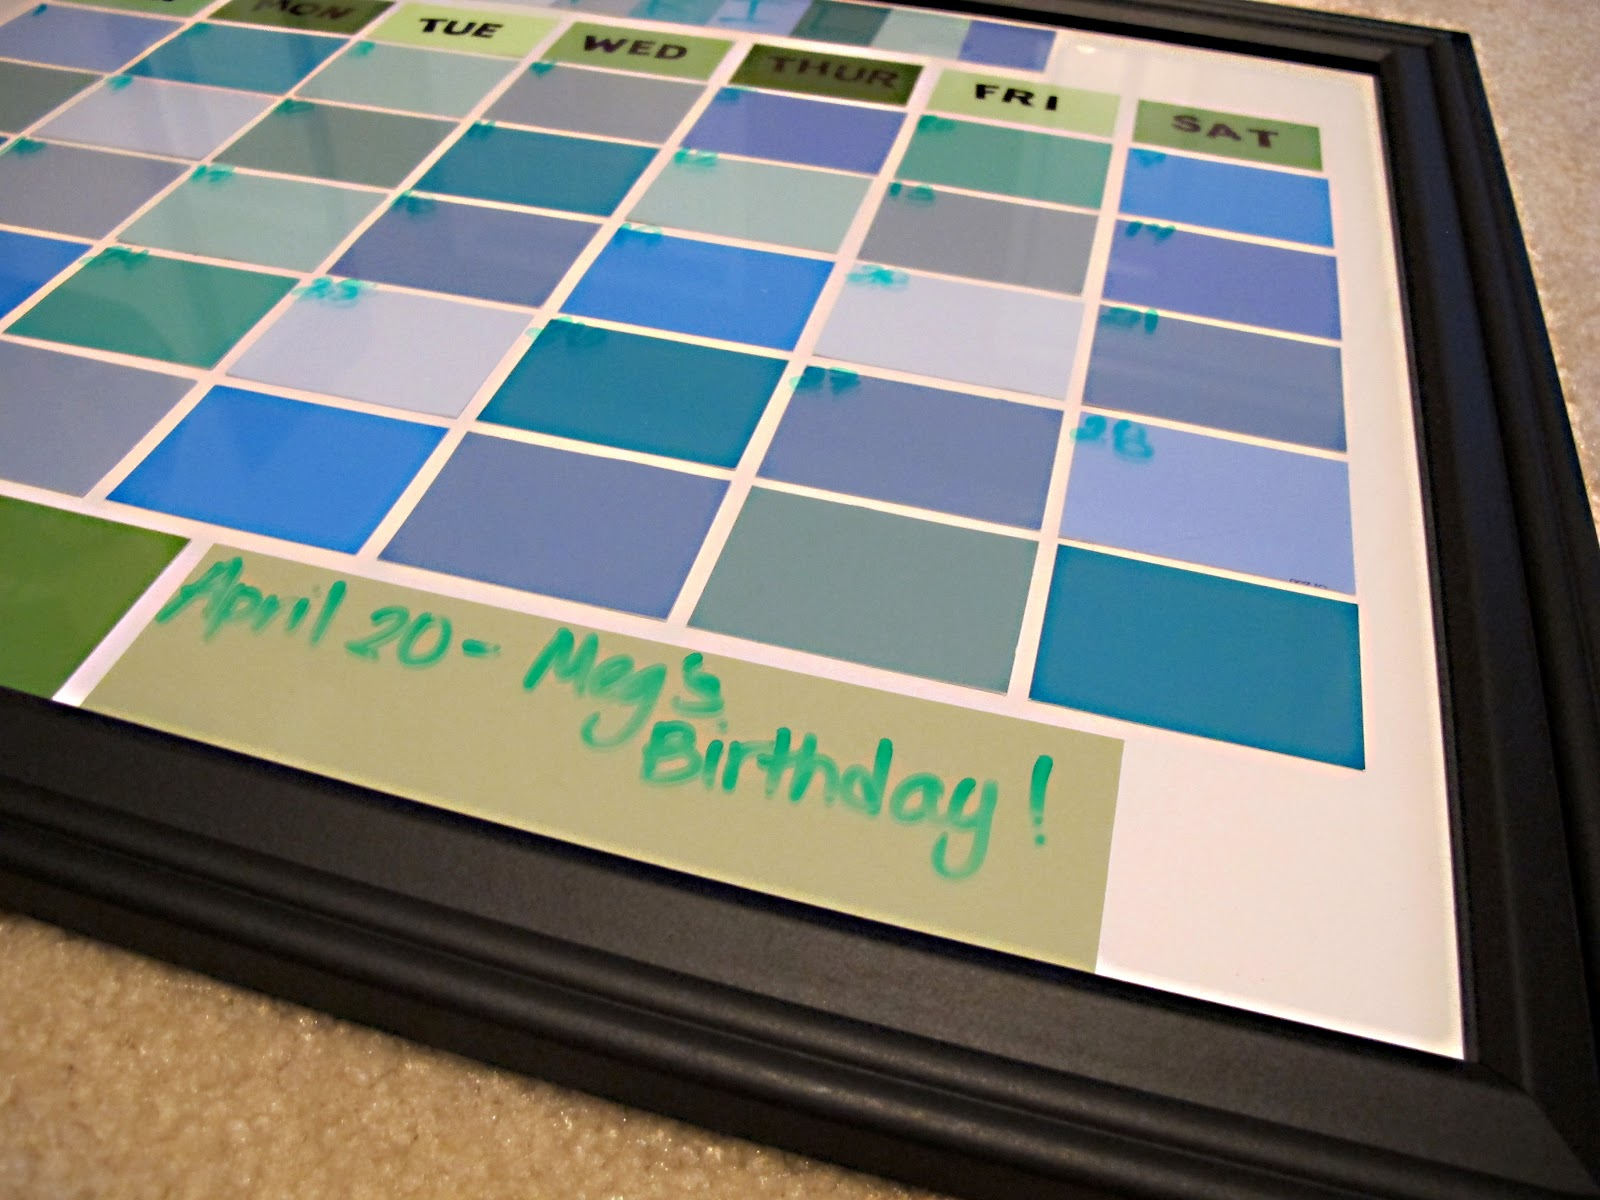 Diy Calendar With Paint Samples : So many sweets diy paint sample dry erase calendar